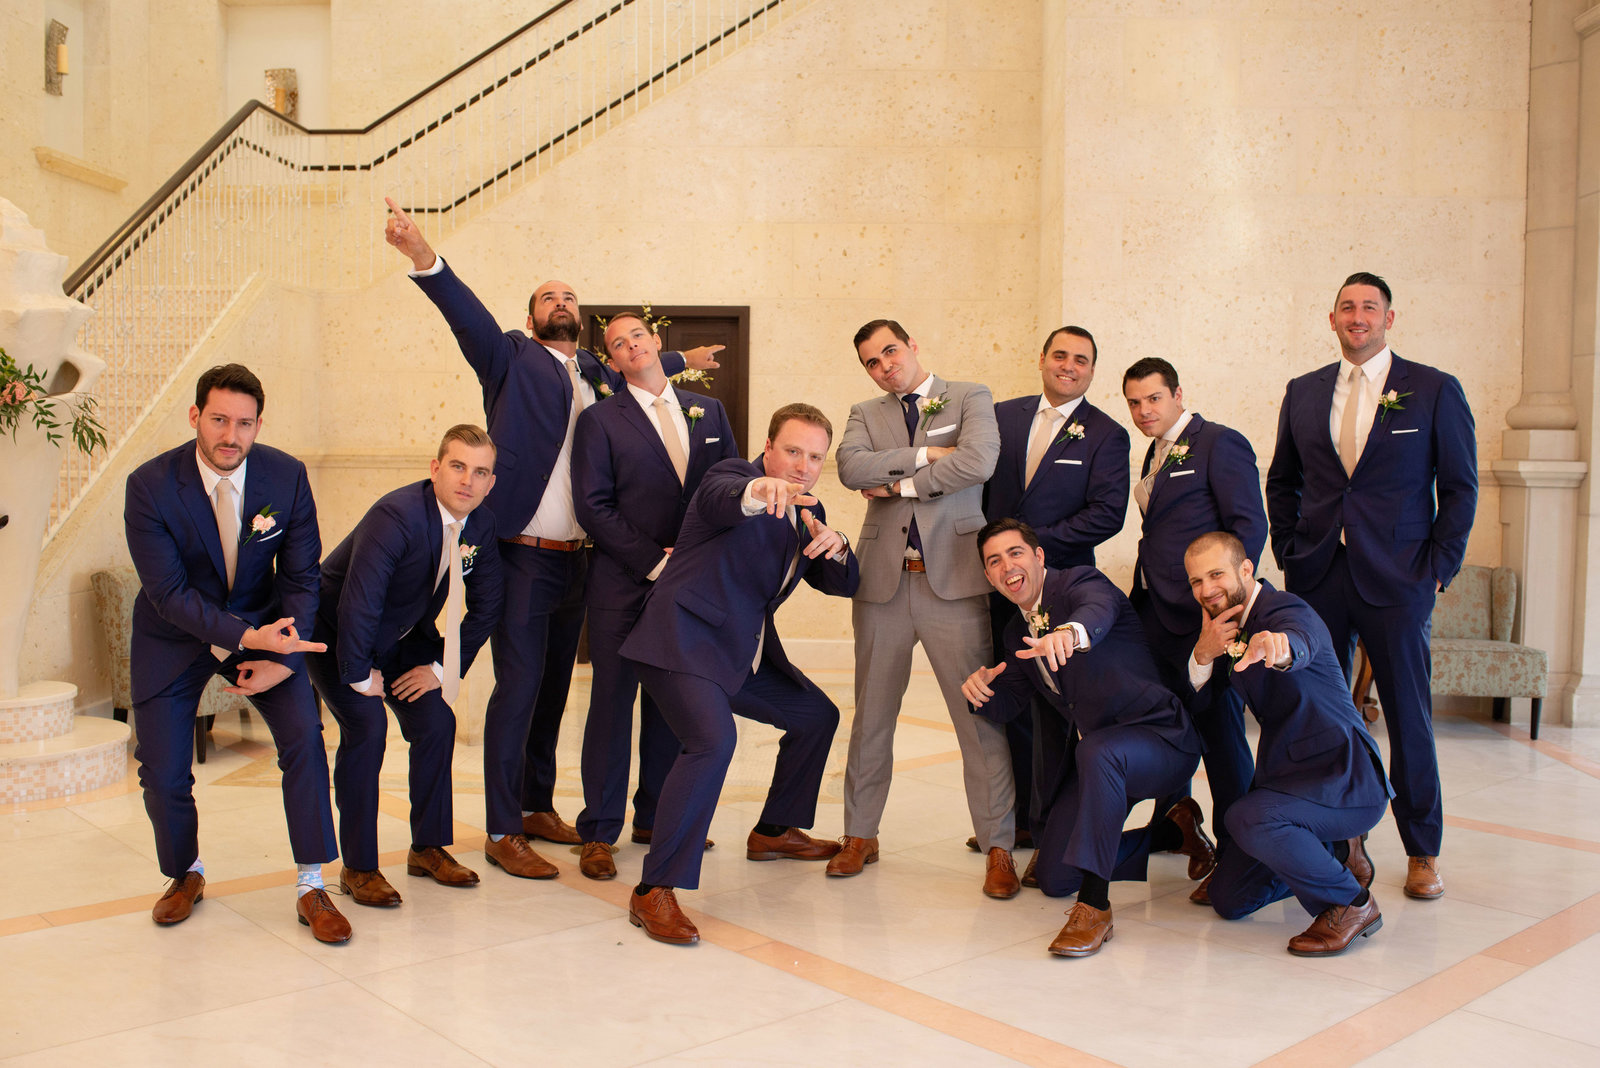 Groom and groomsmen posing at Atlantis Banquet and Events